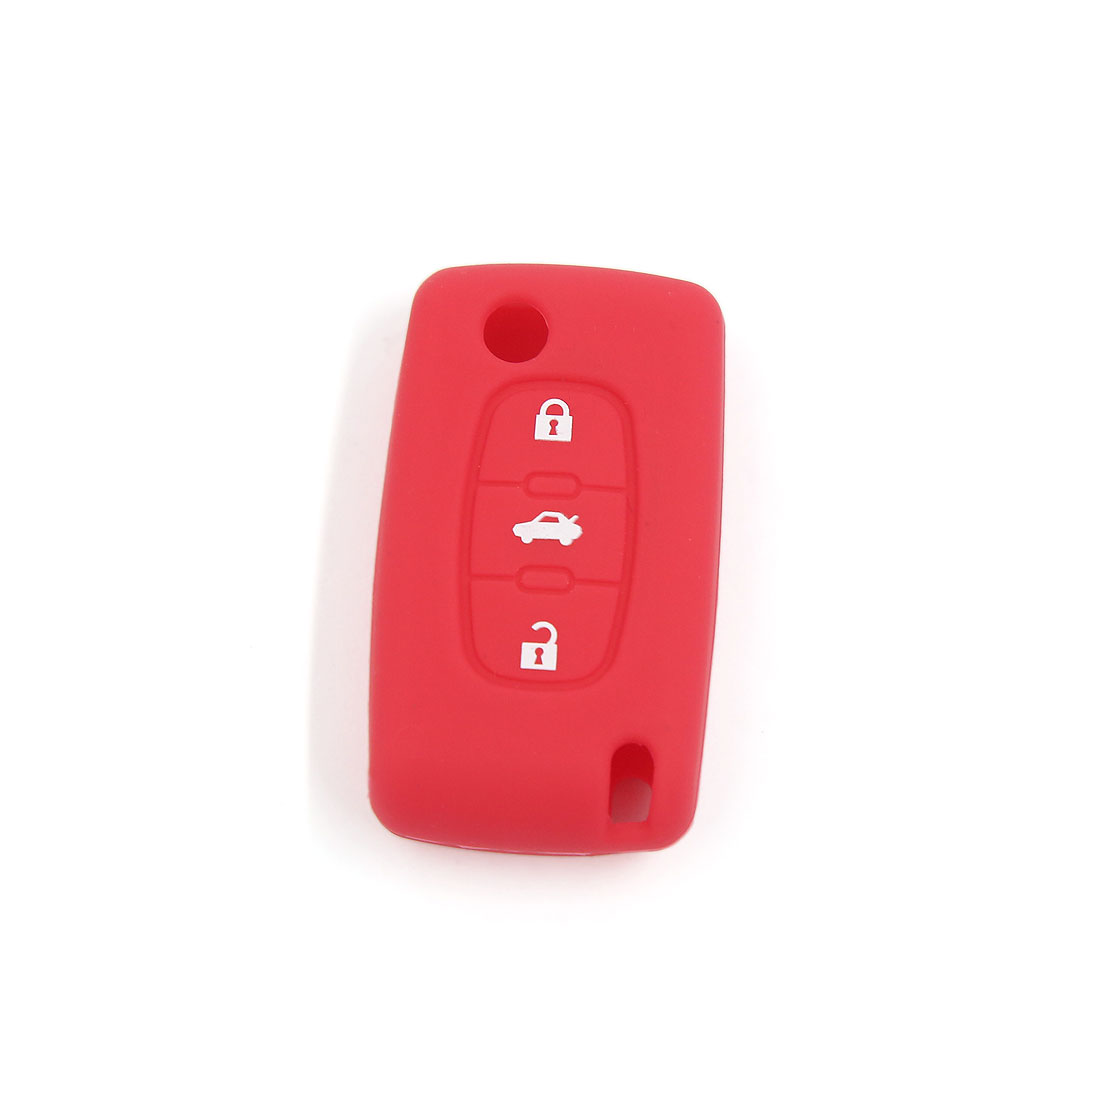 Red Silicone Case Key Fob Cover 3 Button Fit For Peugeot 407 307 107 207 607